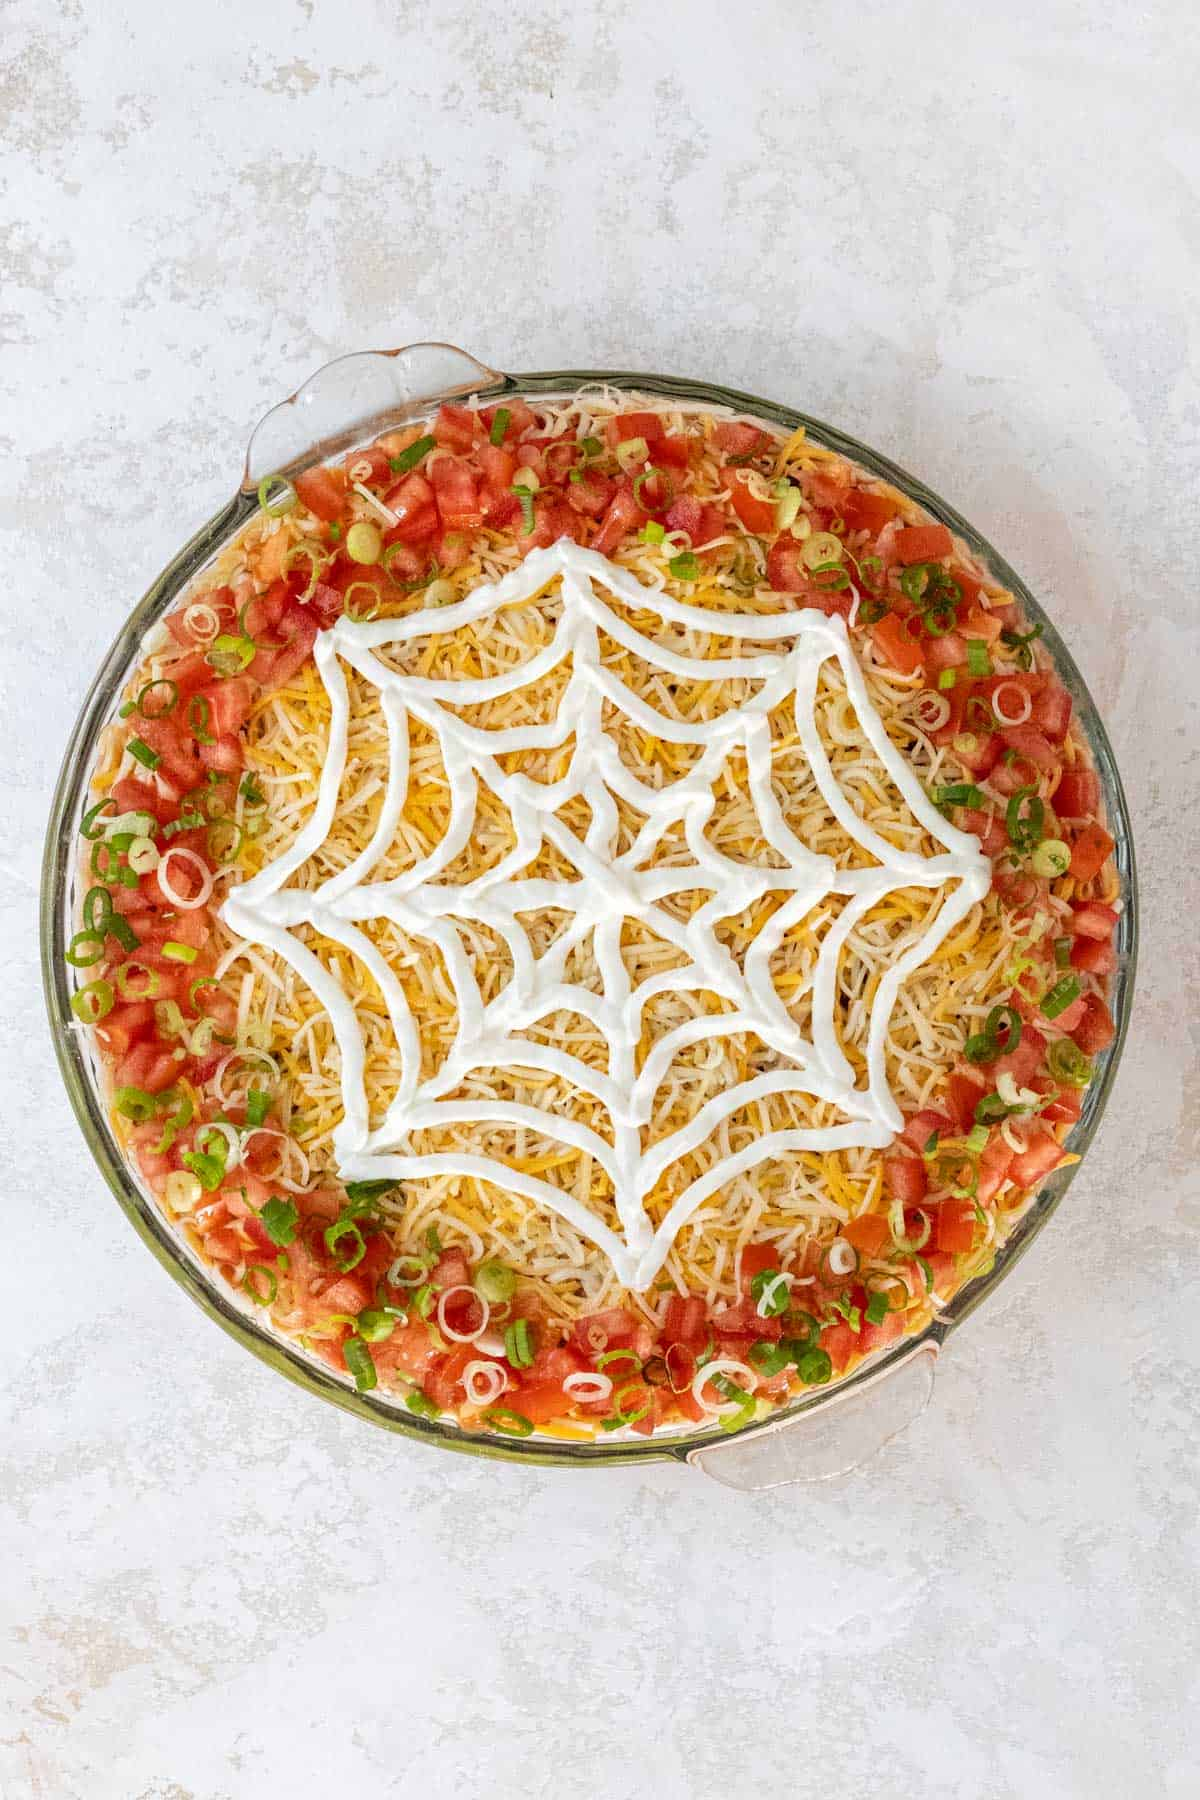 A completed sour cream spiderweb on top of the shredded cheese.